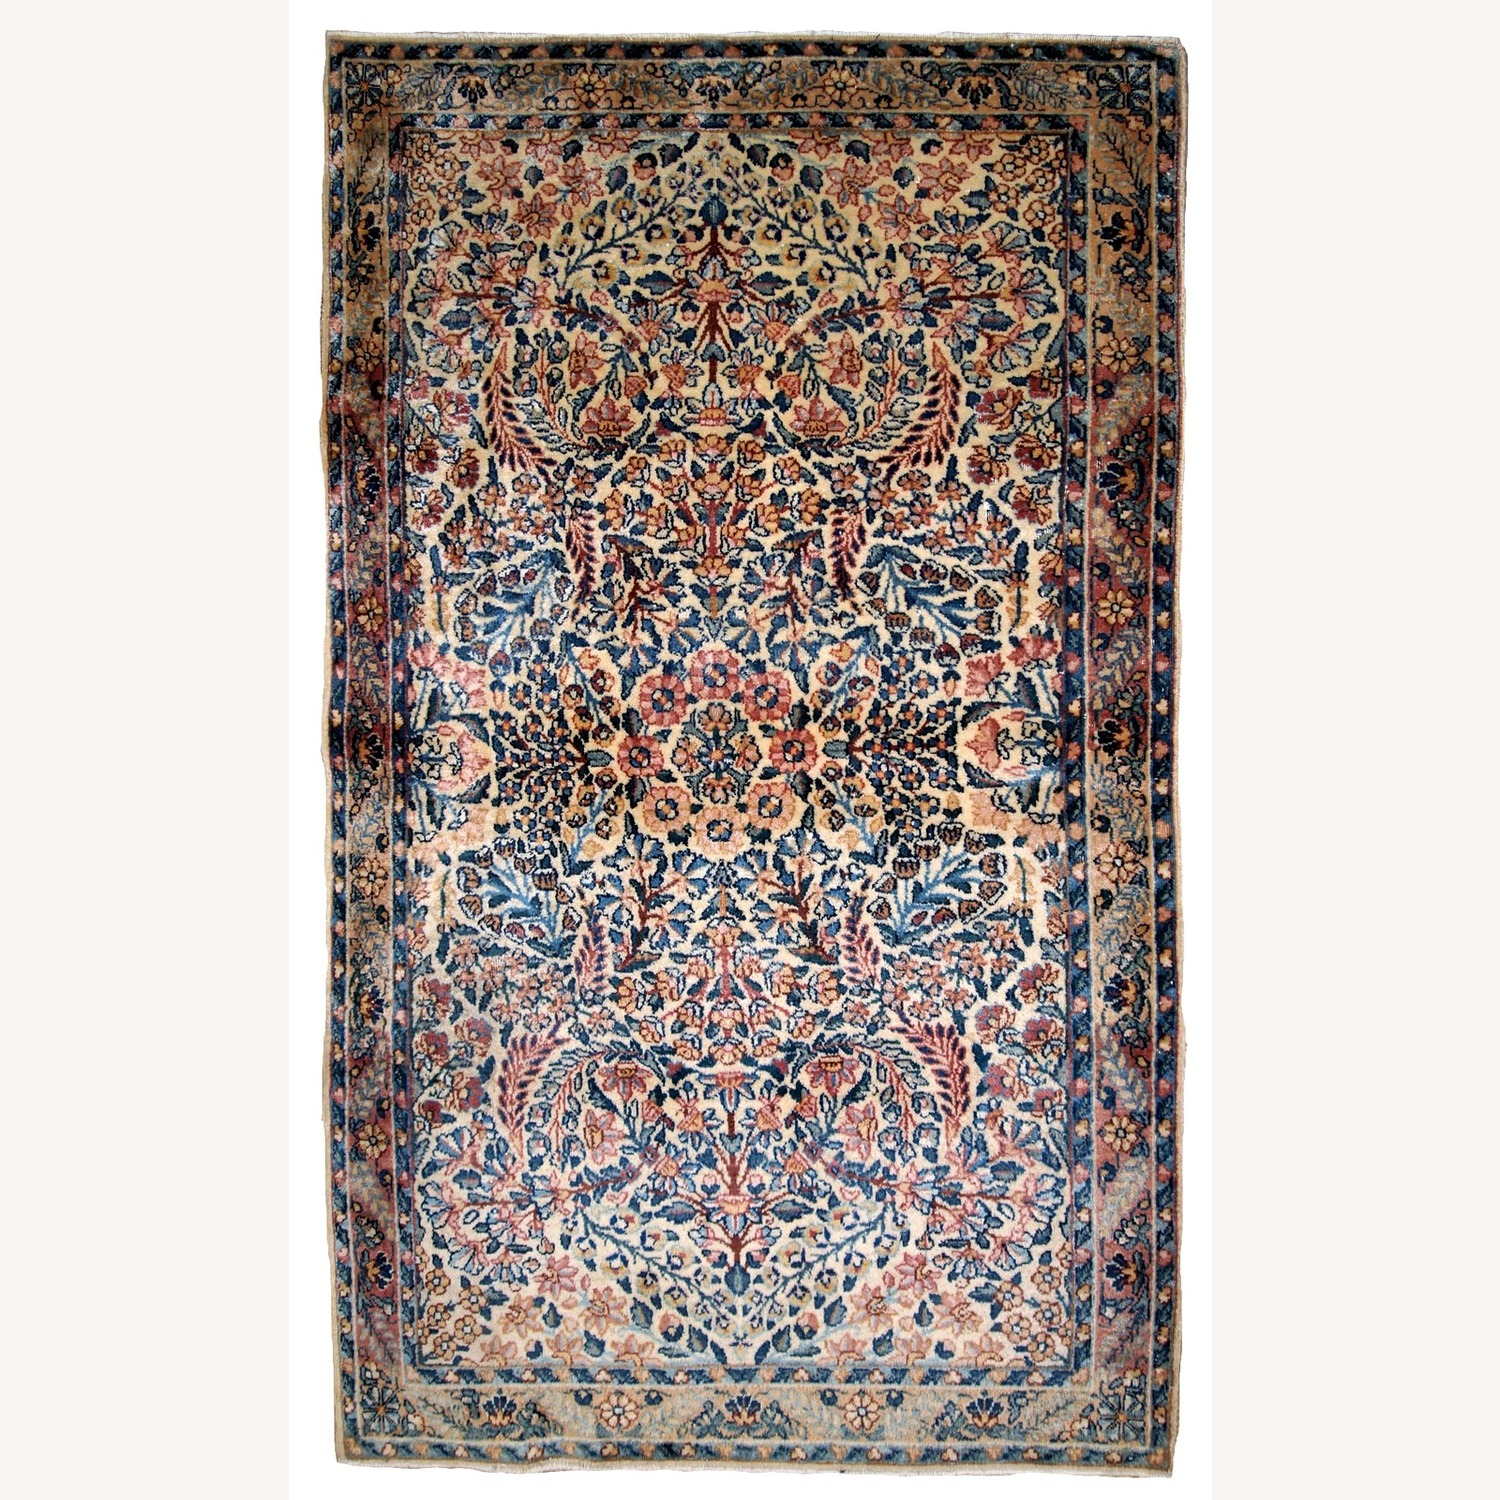 Handmade Antique Persian Kerman Rug - image-1